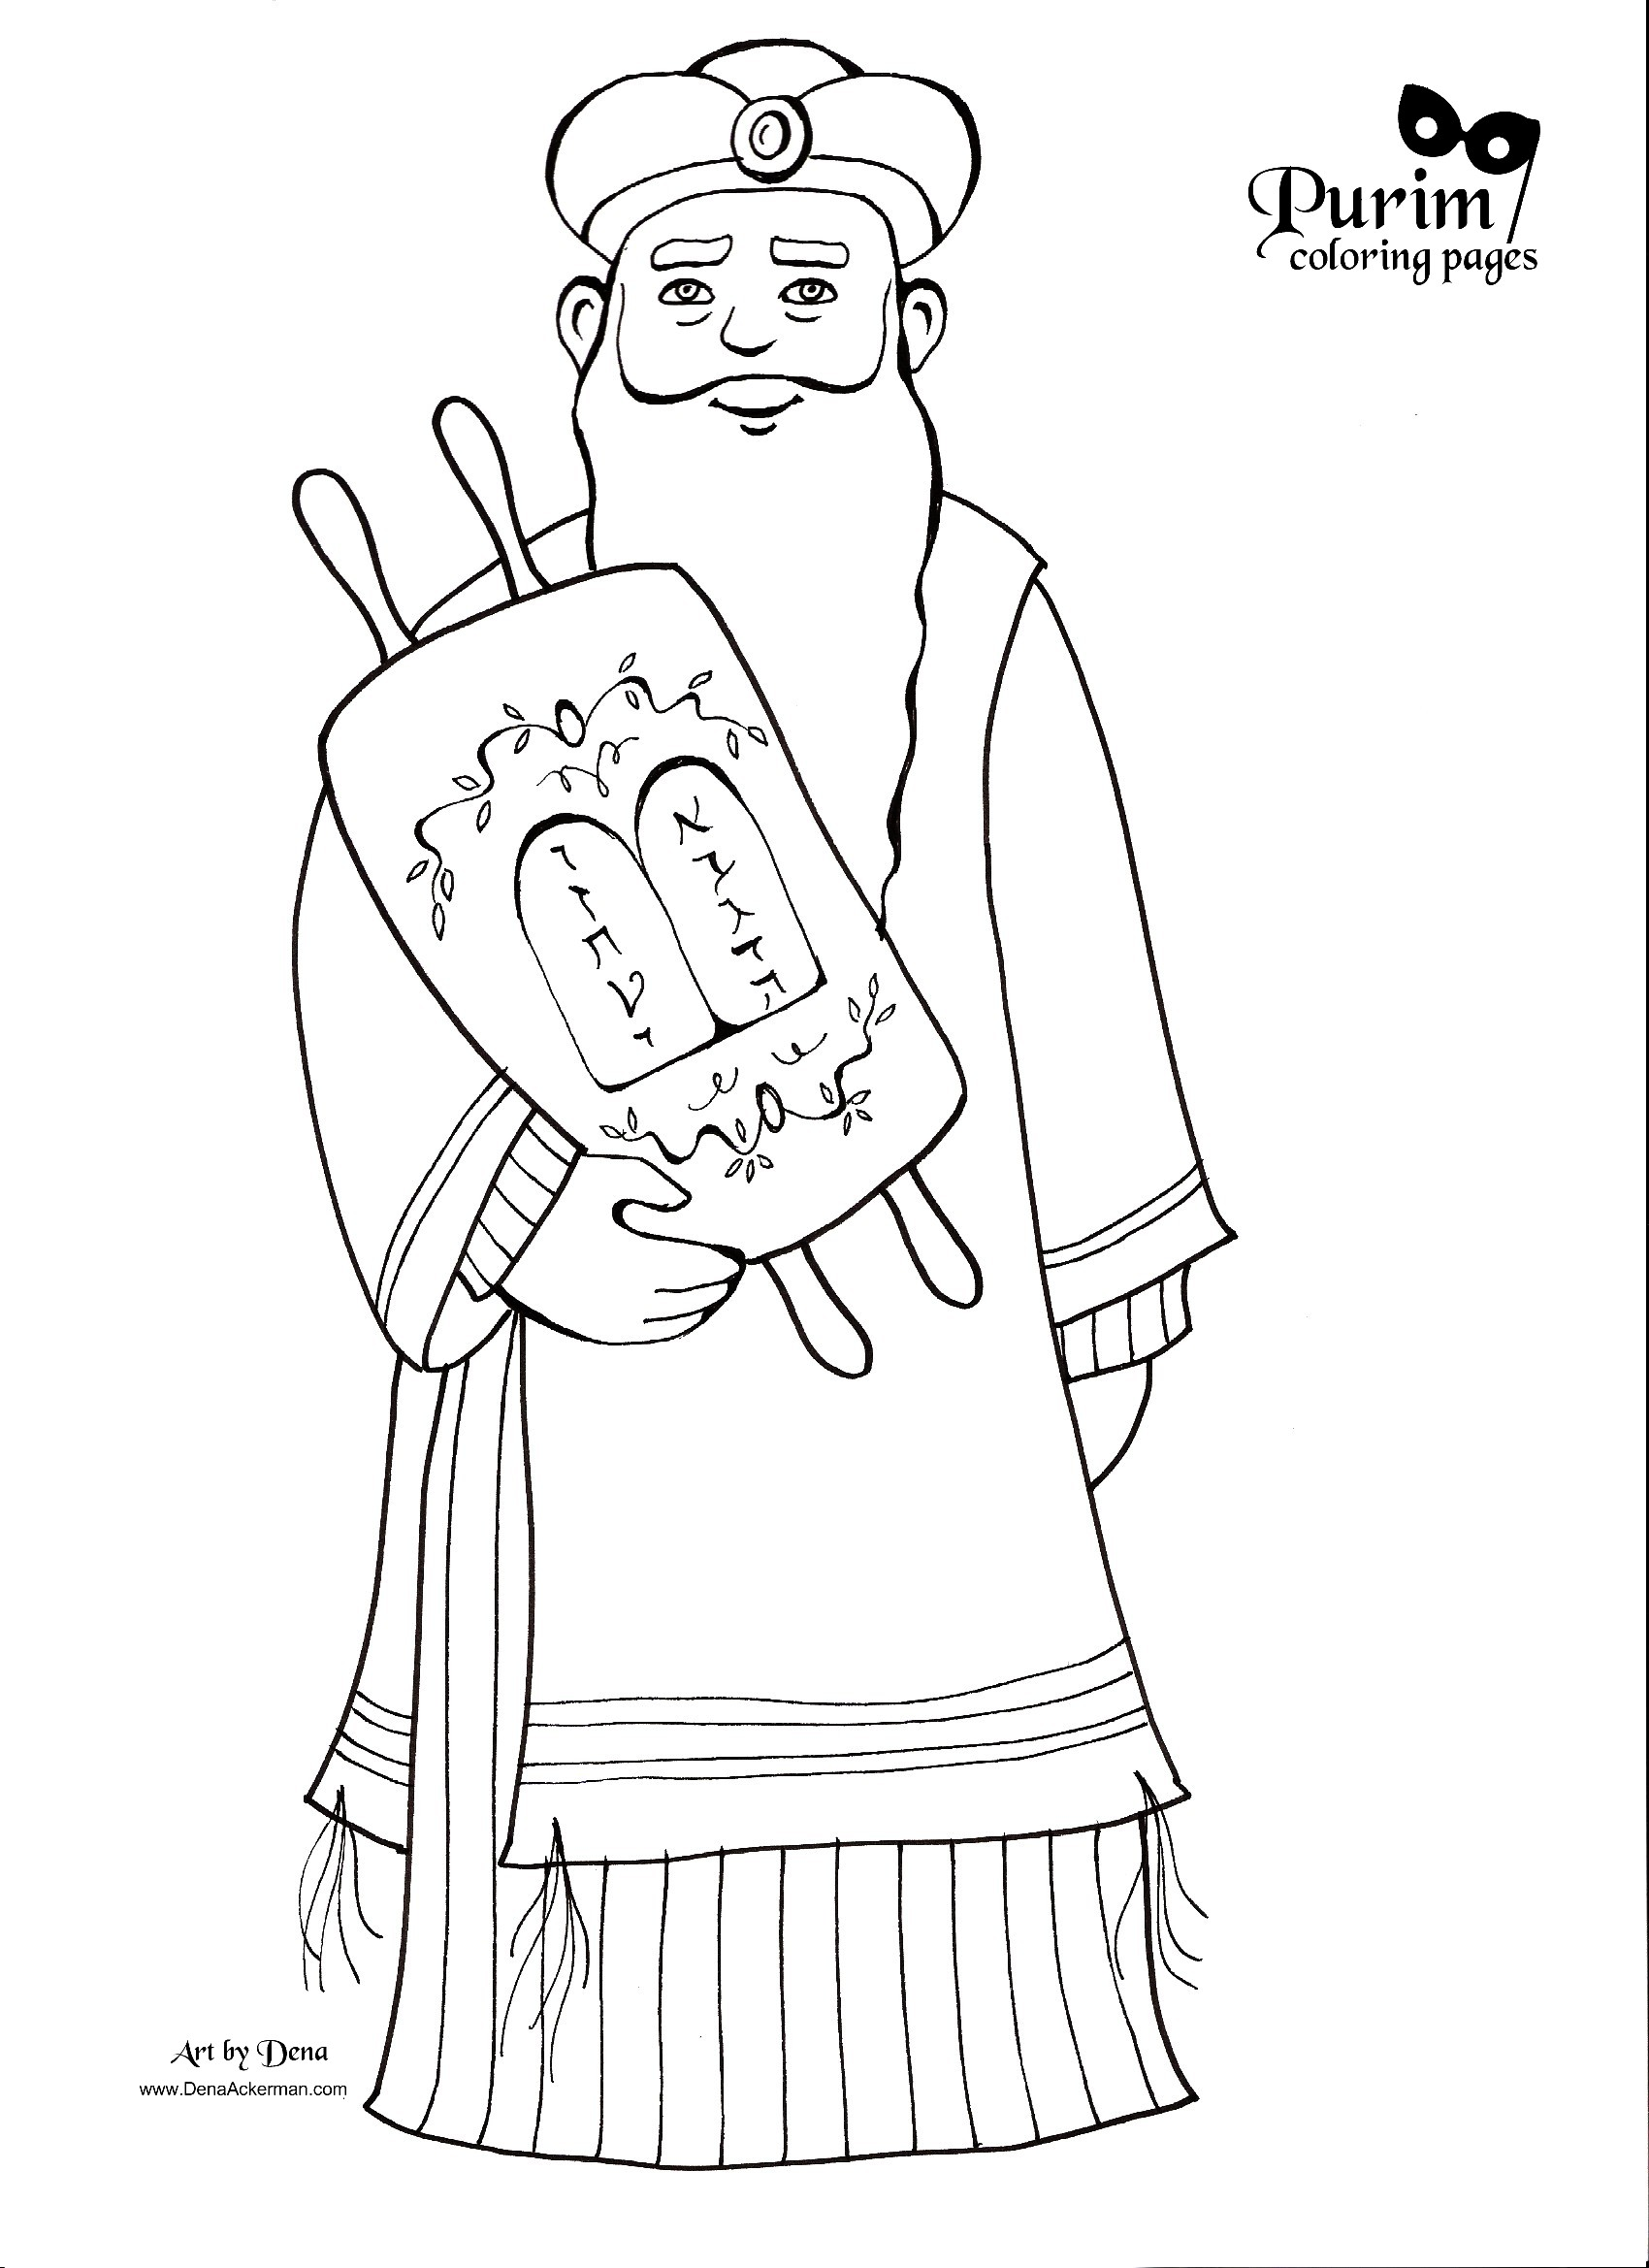 Purim Coloring Pages Purim Coloring Pages